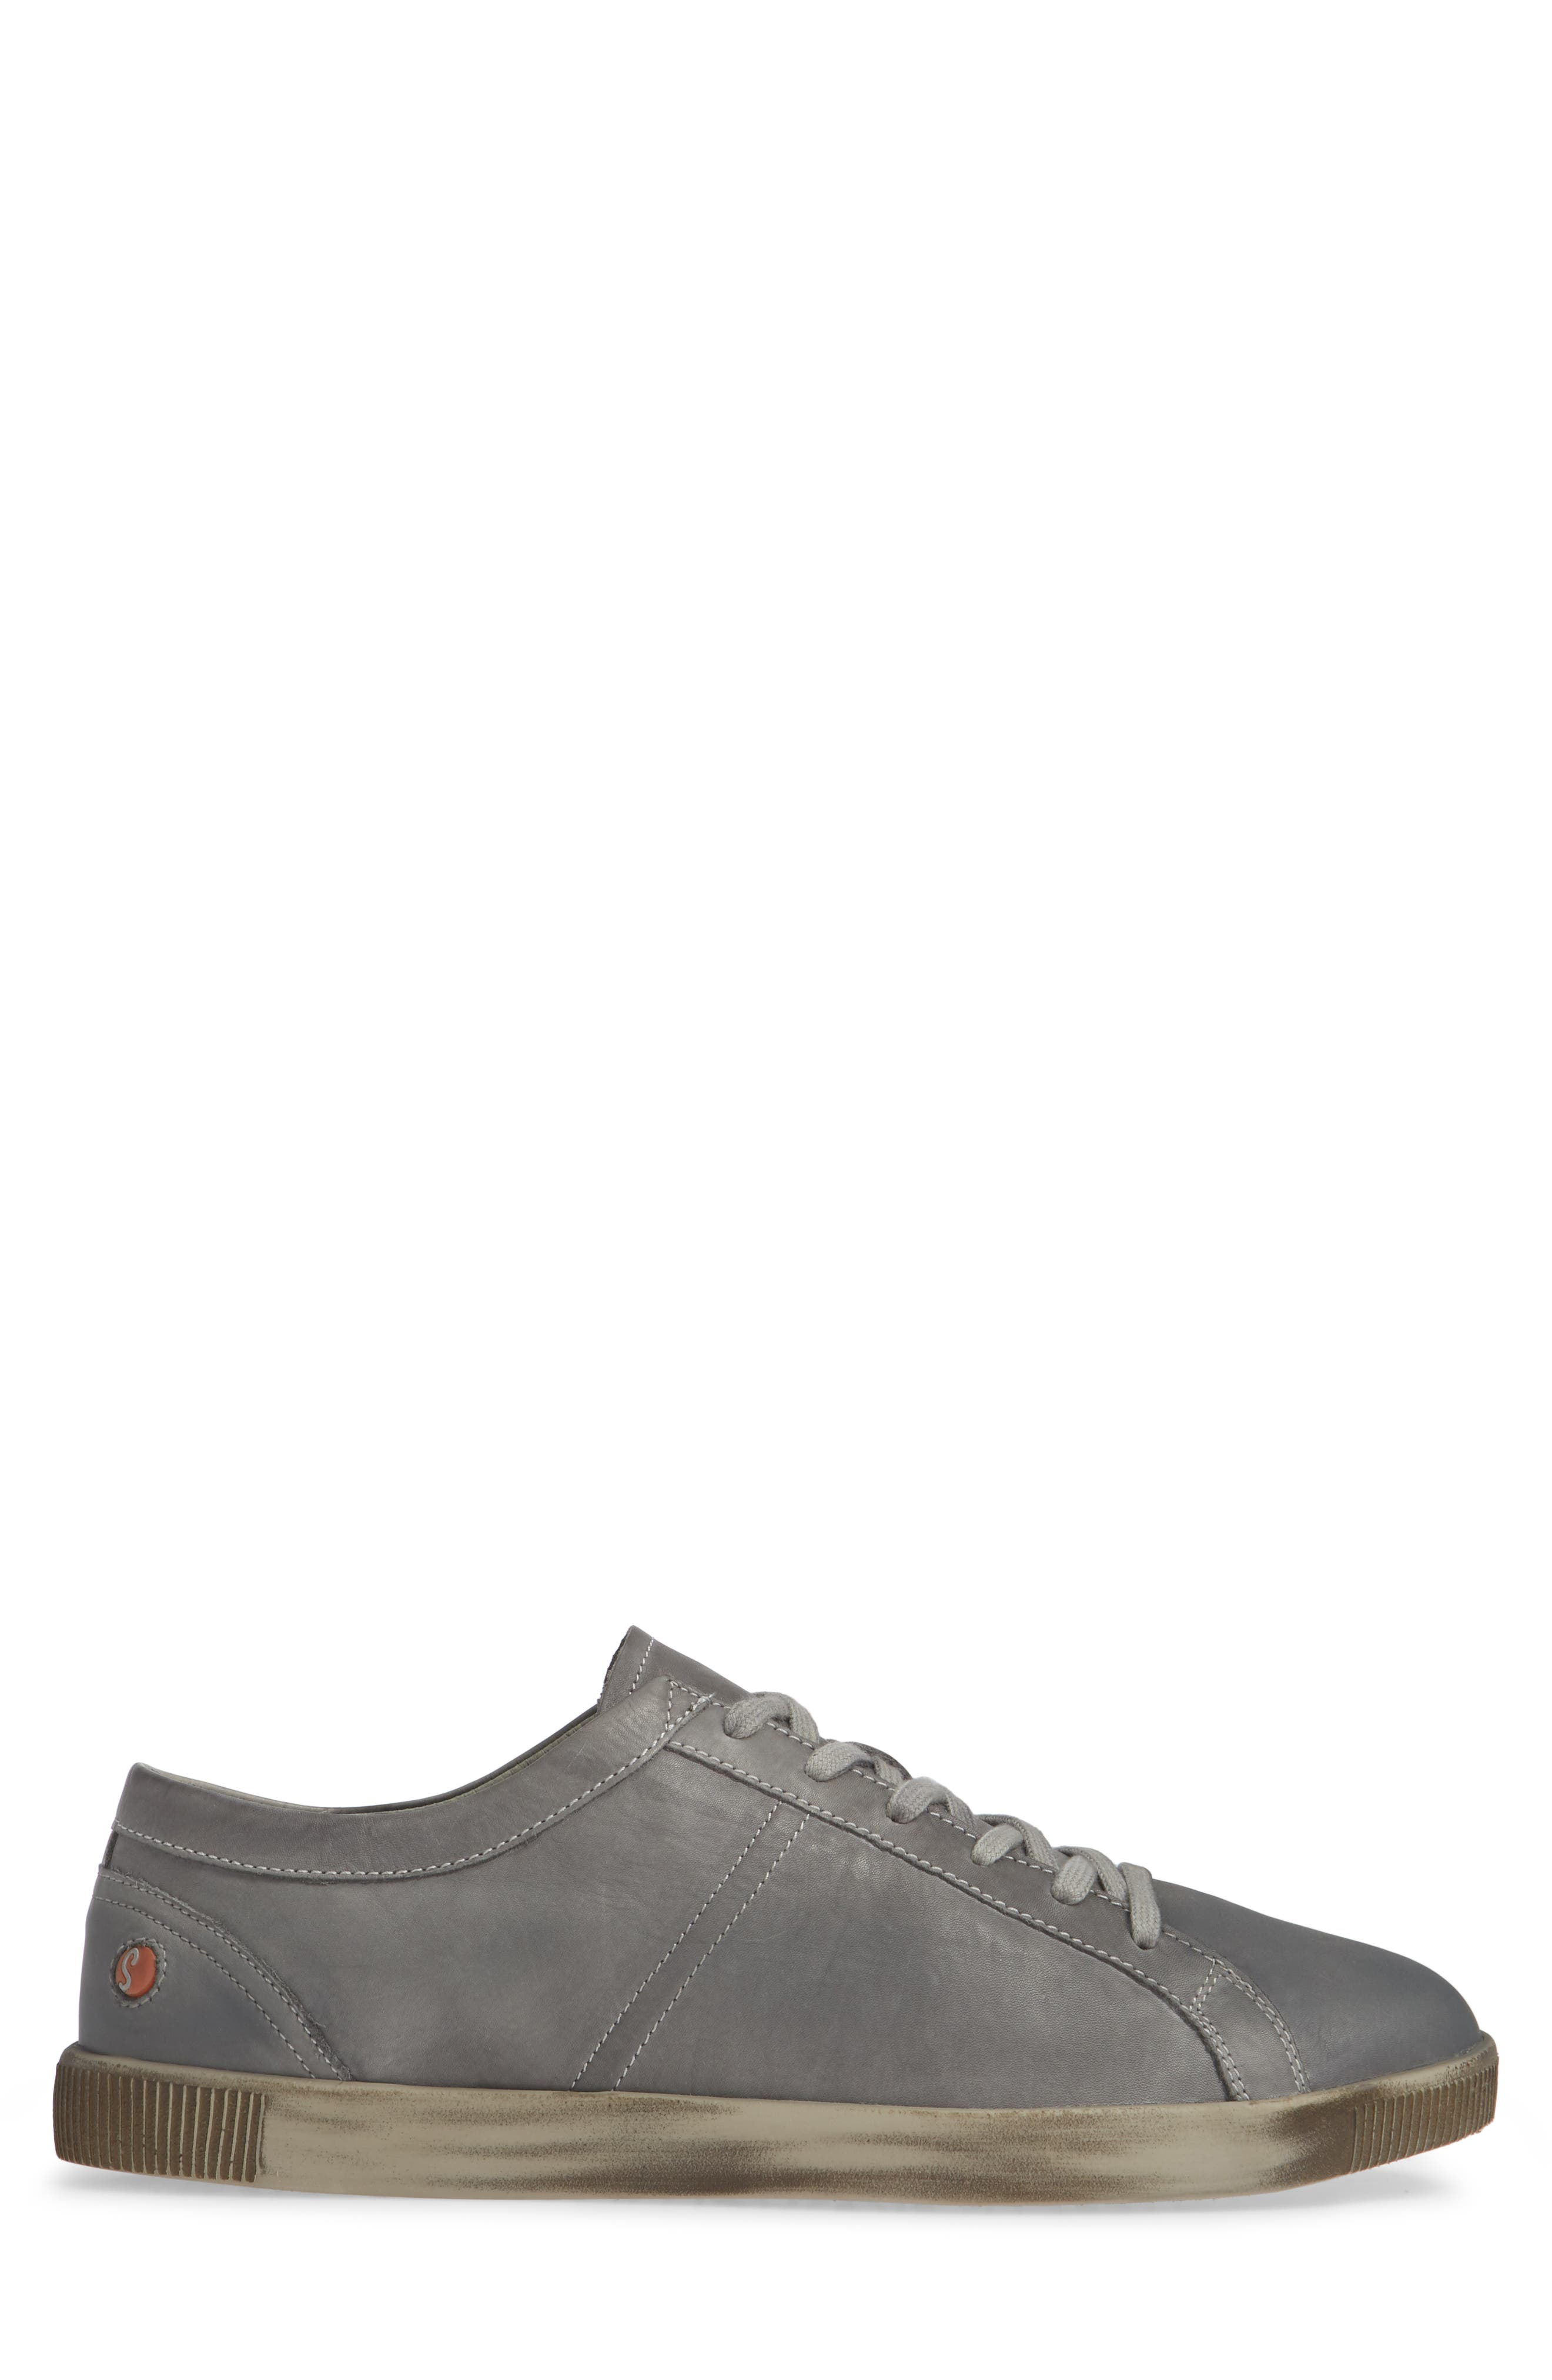 Tom Sneaker,                             Alternate thumbnail 3, color,                             MILITARY WASHED LEATHER